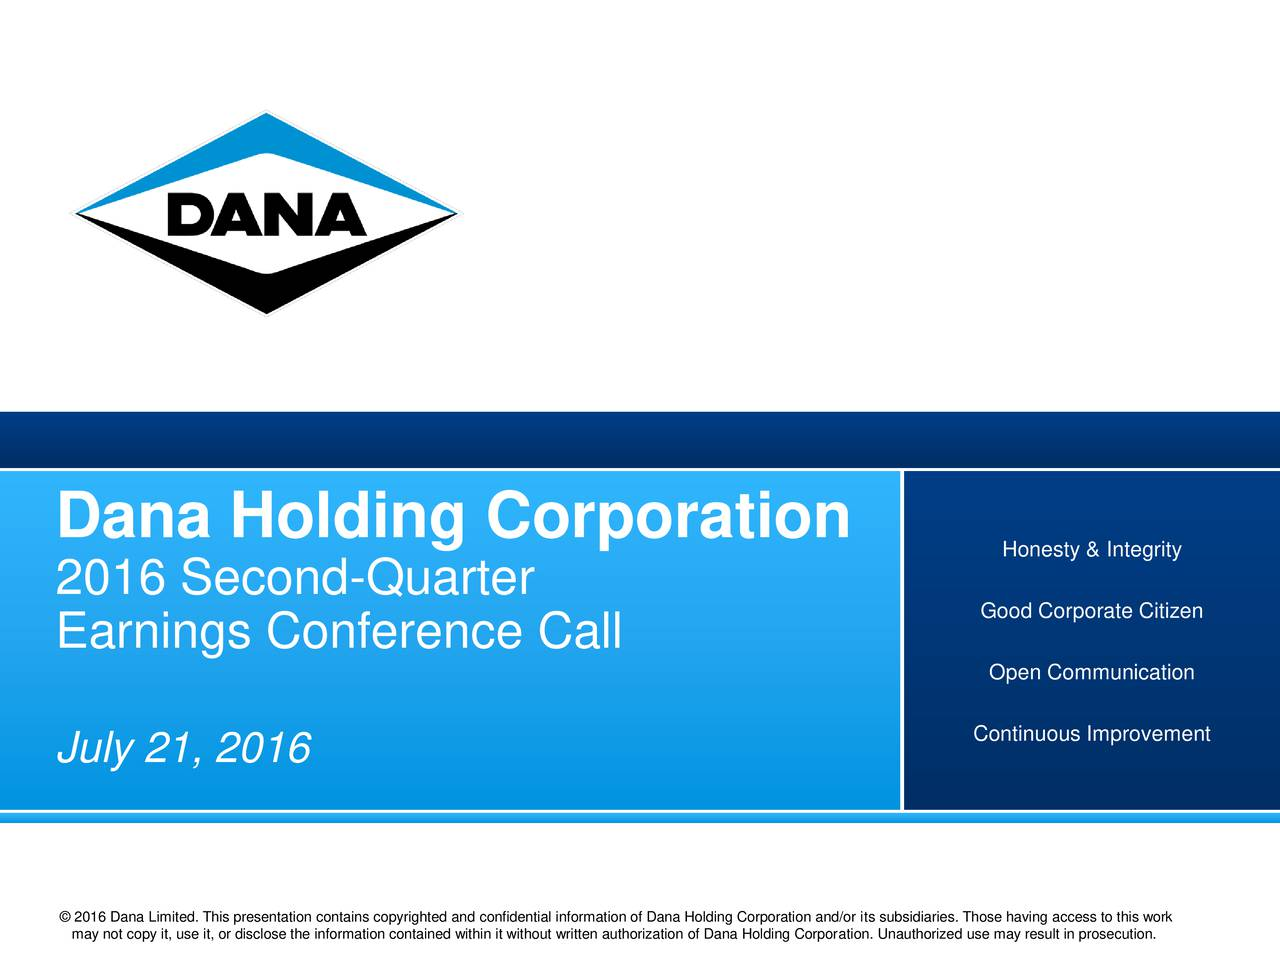 Honesty & Integrity 2016 Second-Quarter Good Corporate Citizen Earnings Conference Call Open Communication Continuous Improvement July 21, 2016 Dana 2016 copy it, use it, or disclose the information contained within it without written authorization of Dana Holding Corporation. Unauthorized use may result in prosecution.